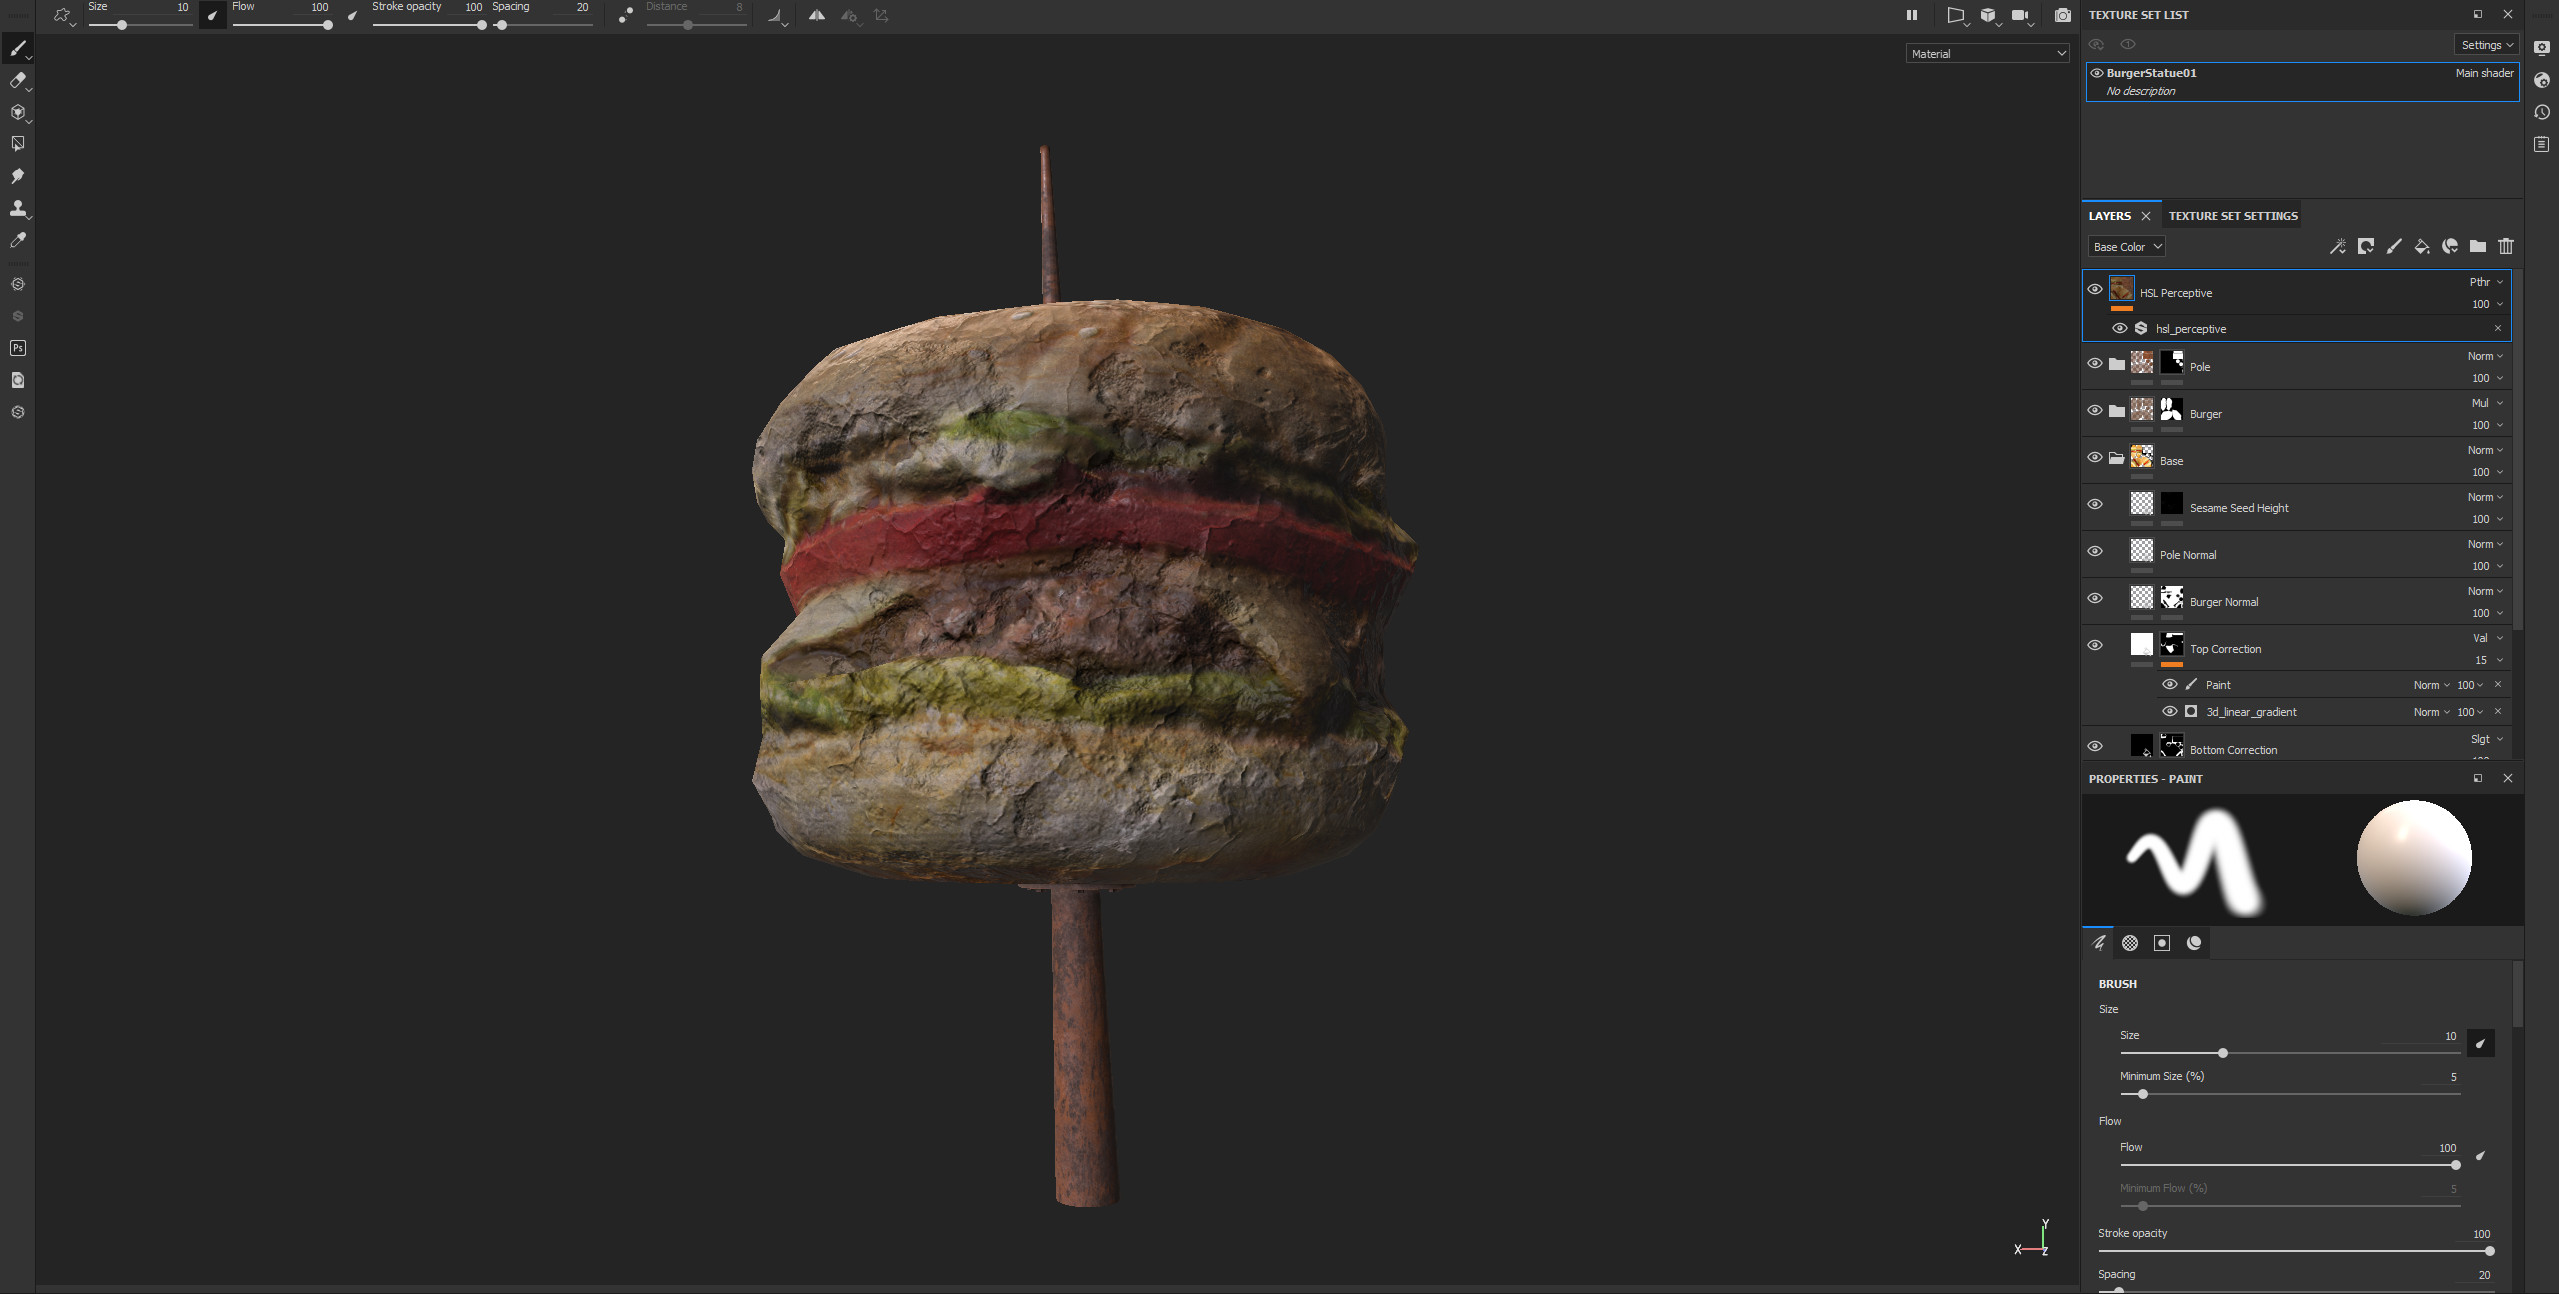 Final Texture work in Substance Painter, i retextured bottom part from pictures and added Fallout stylization.